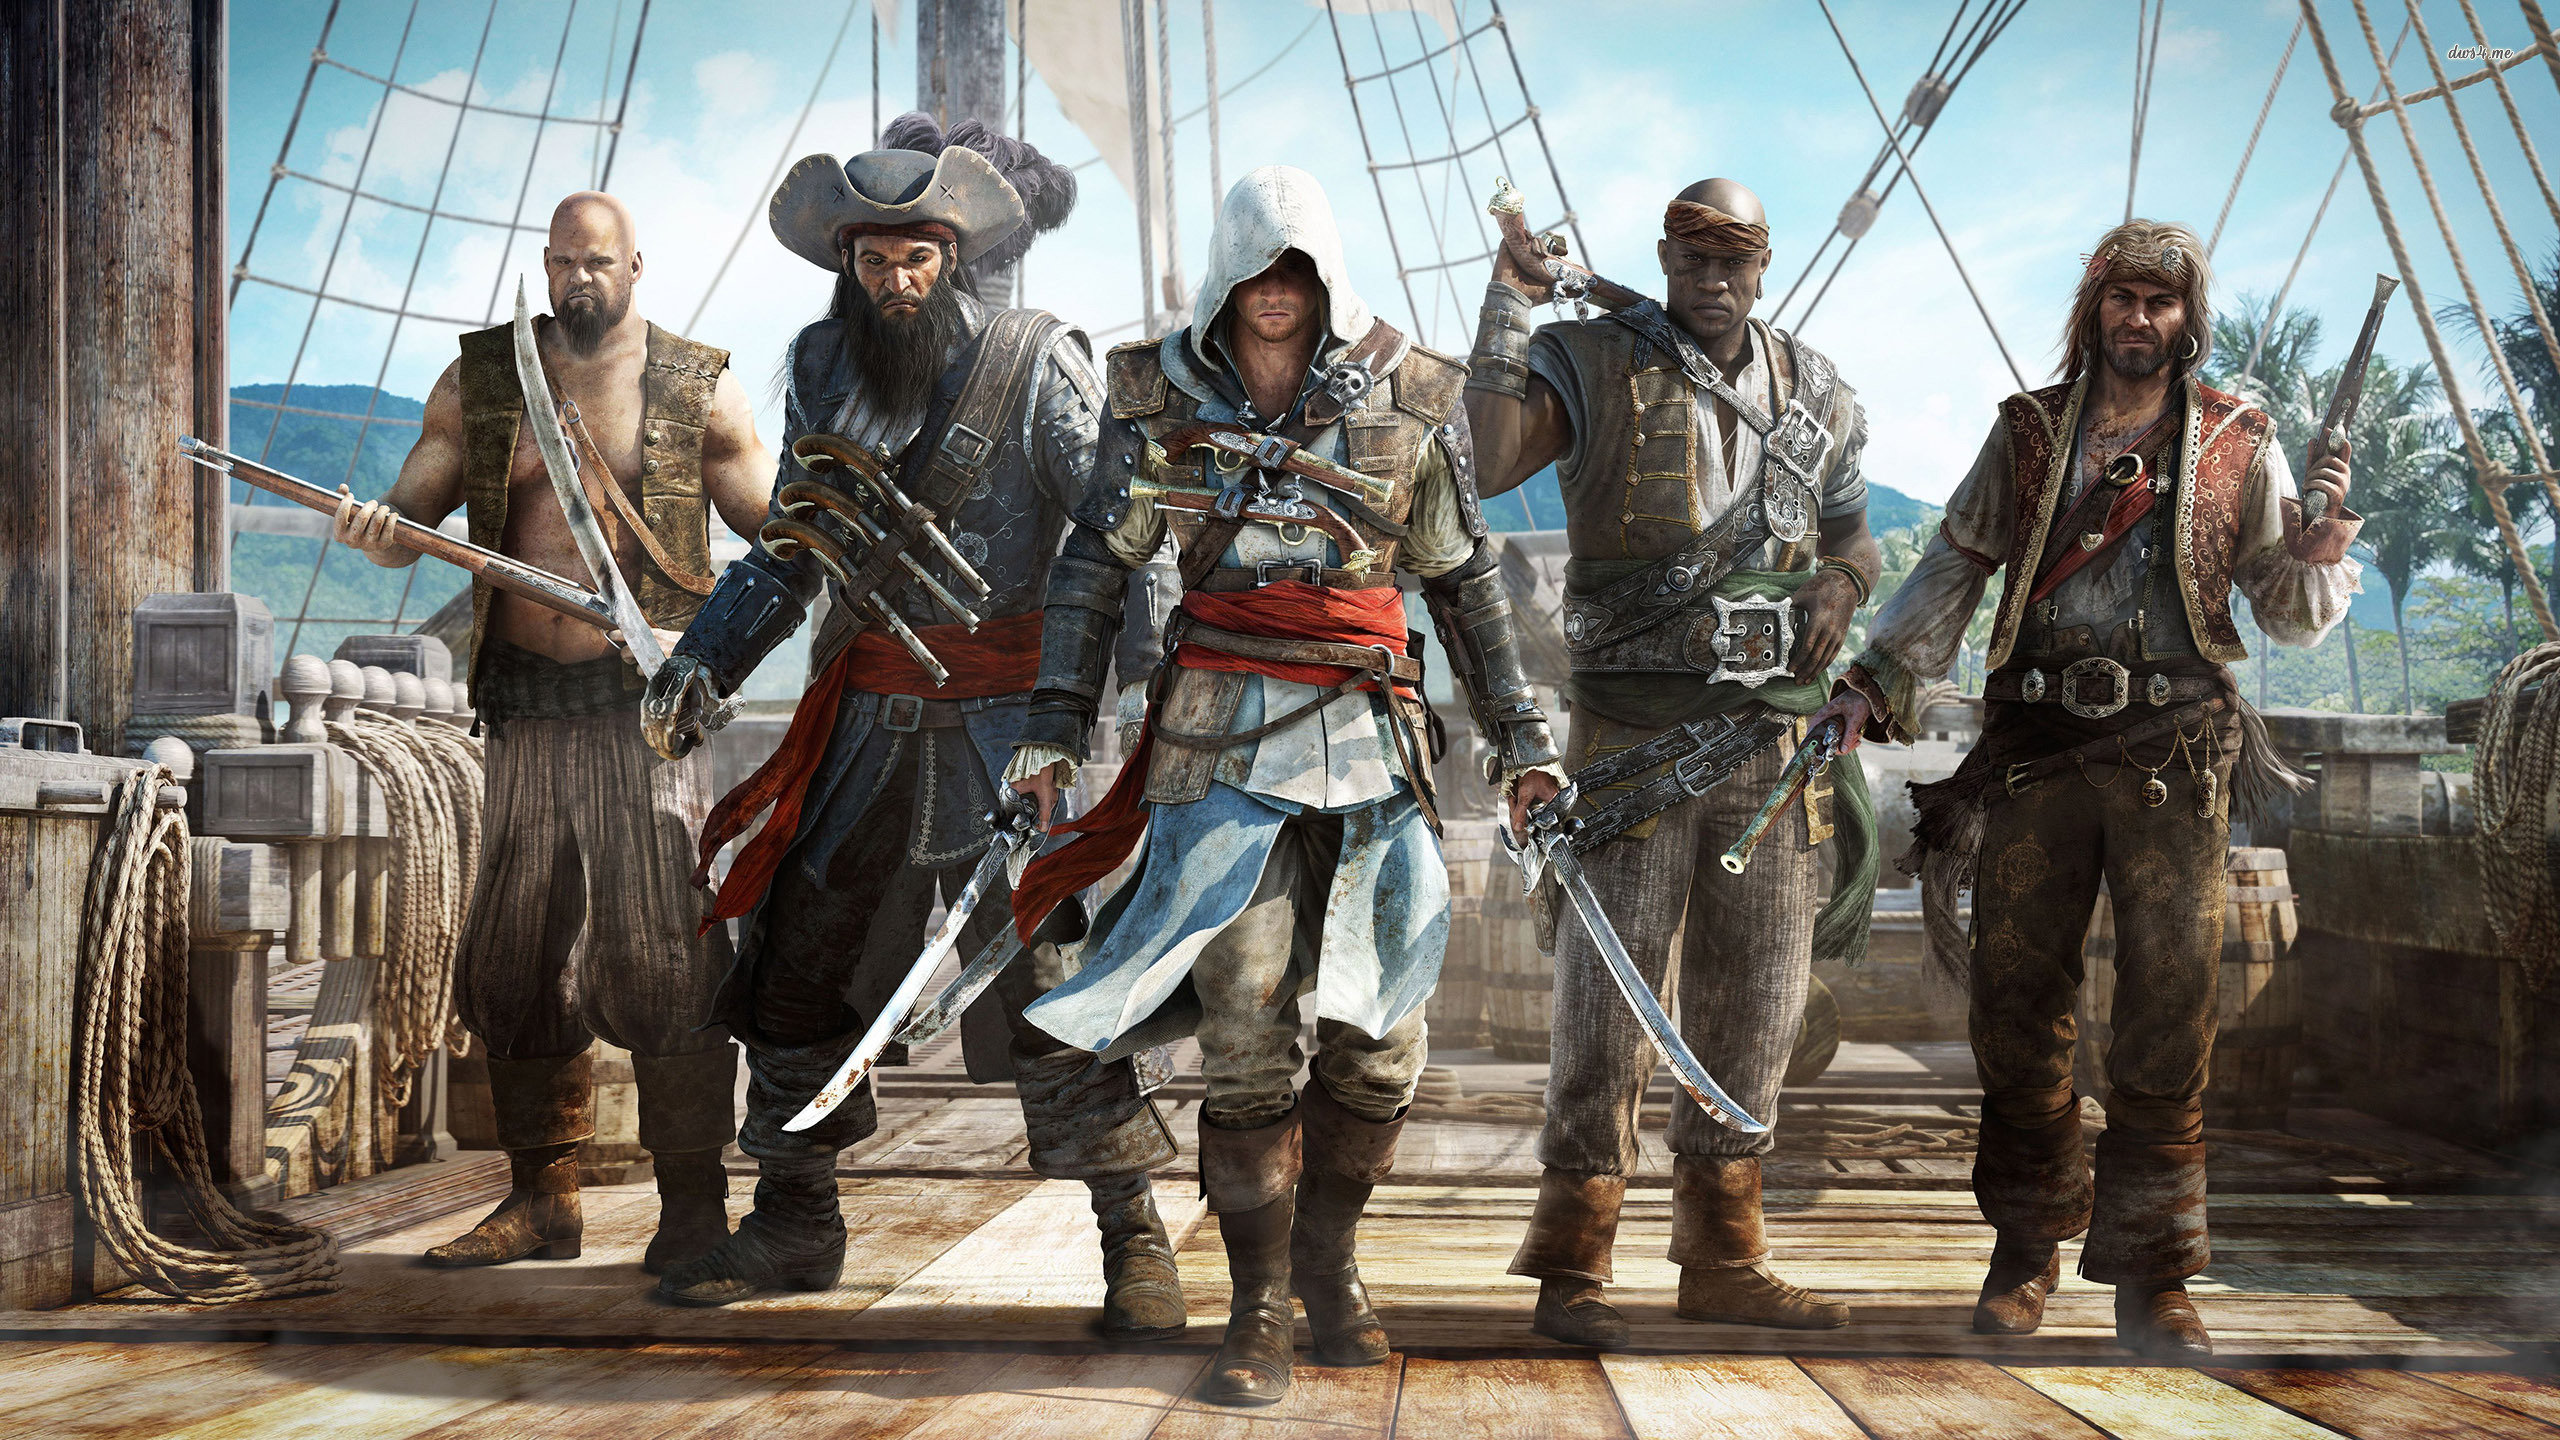 Awesome Assassin's Creed 4: Black Flag free wallpaper ID:234542 for hd 2560x1440 desktop